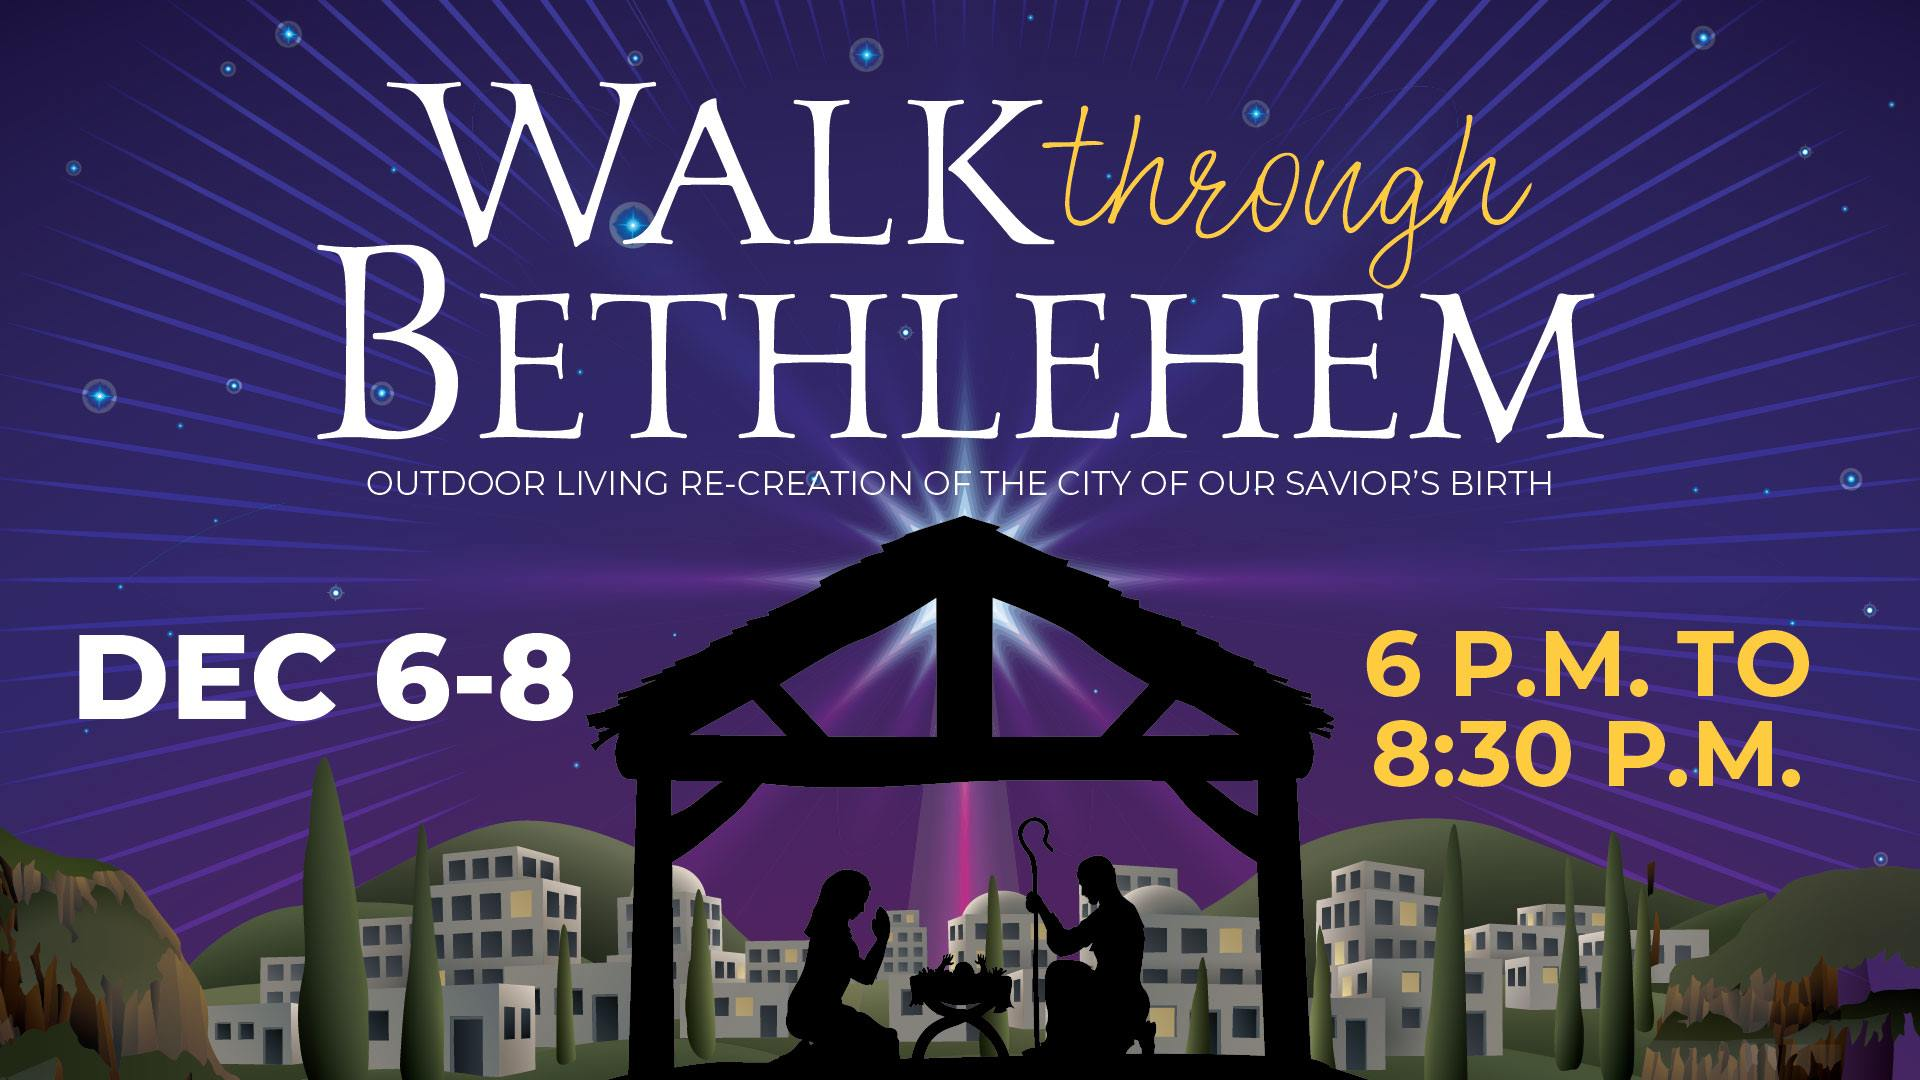 Walk Through Bethlehem